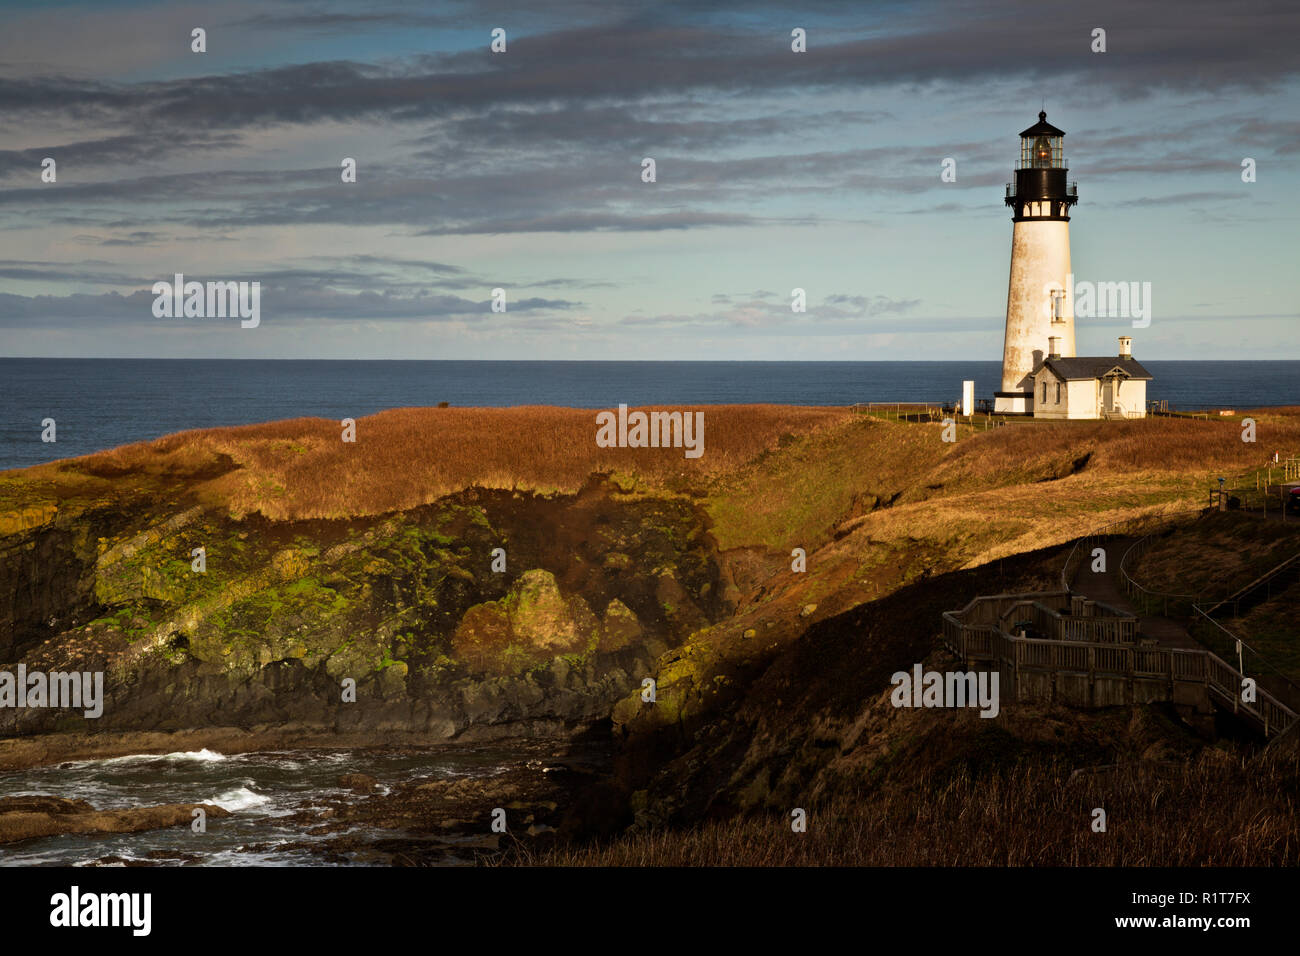 OR02385-00...OREGON - Yaquina Head Lighthouse in the Yaquina Head Outstanding Natural Area. Stock Photo